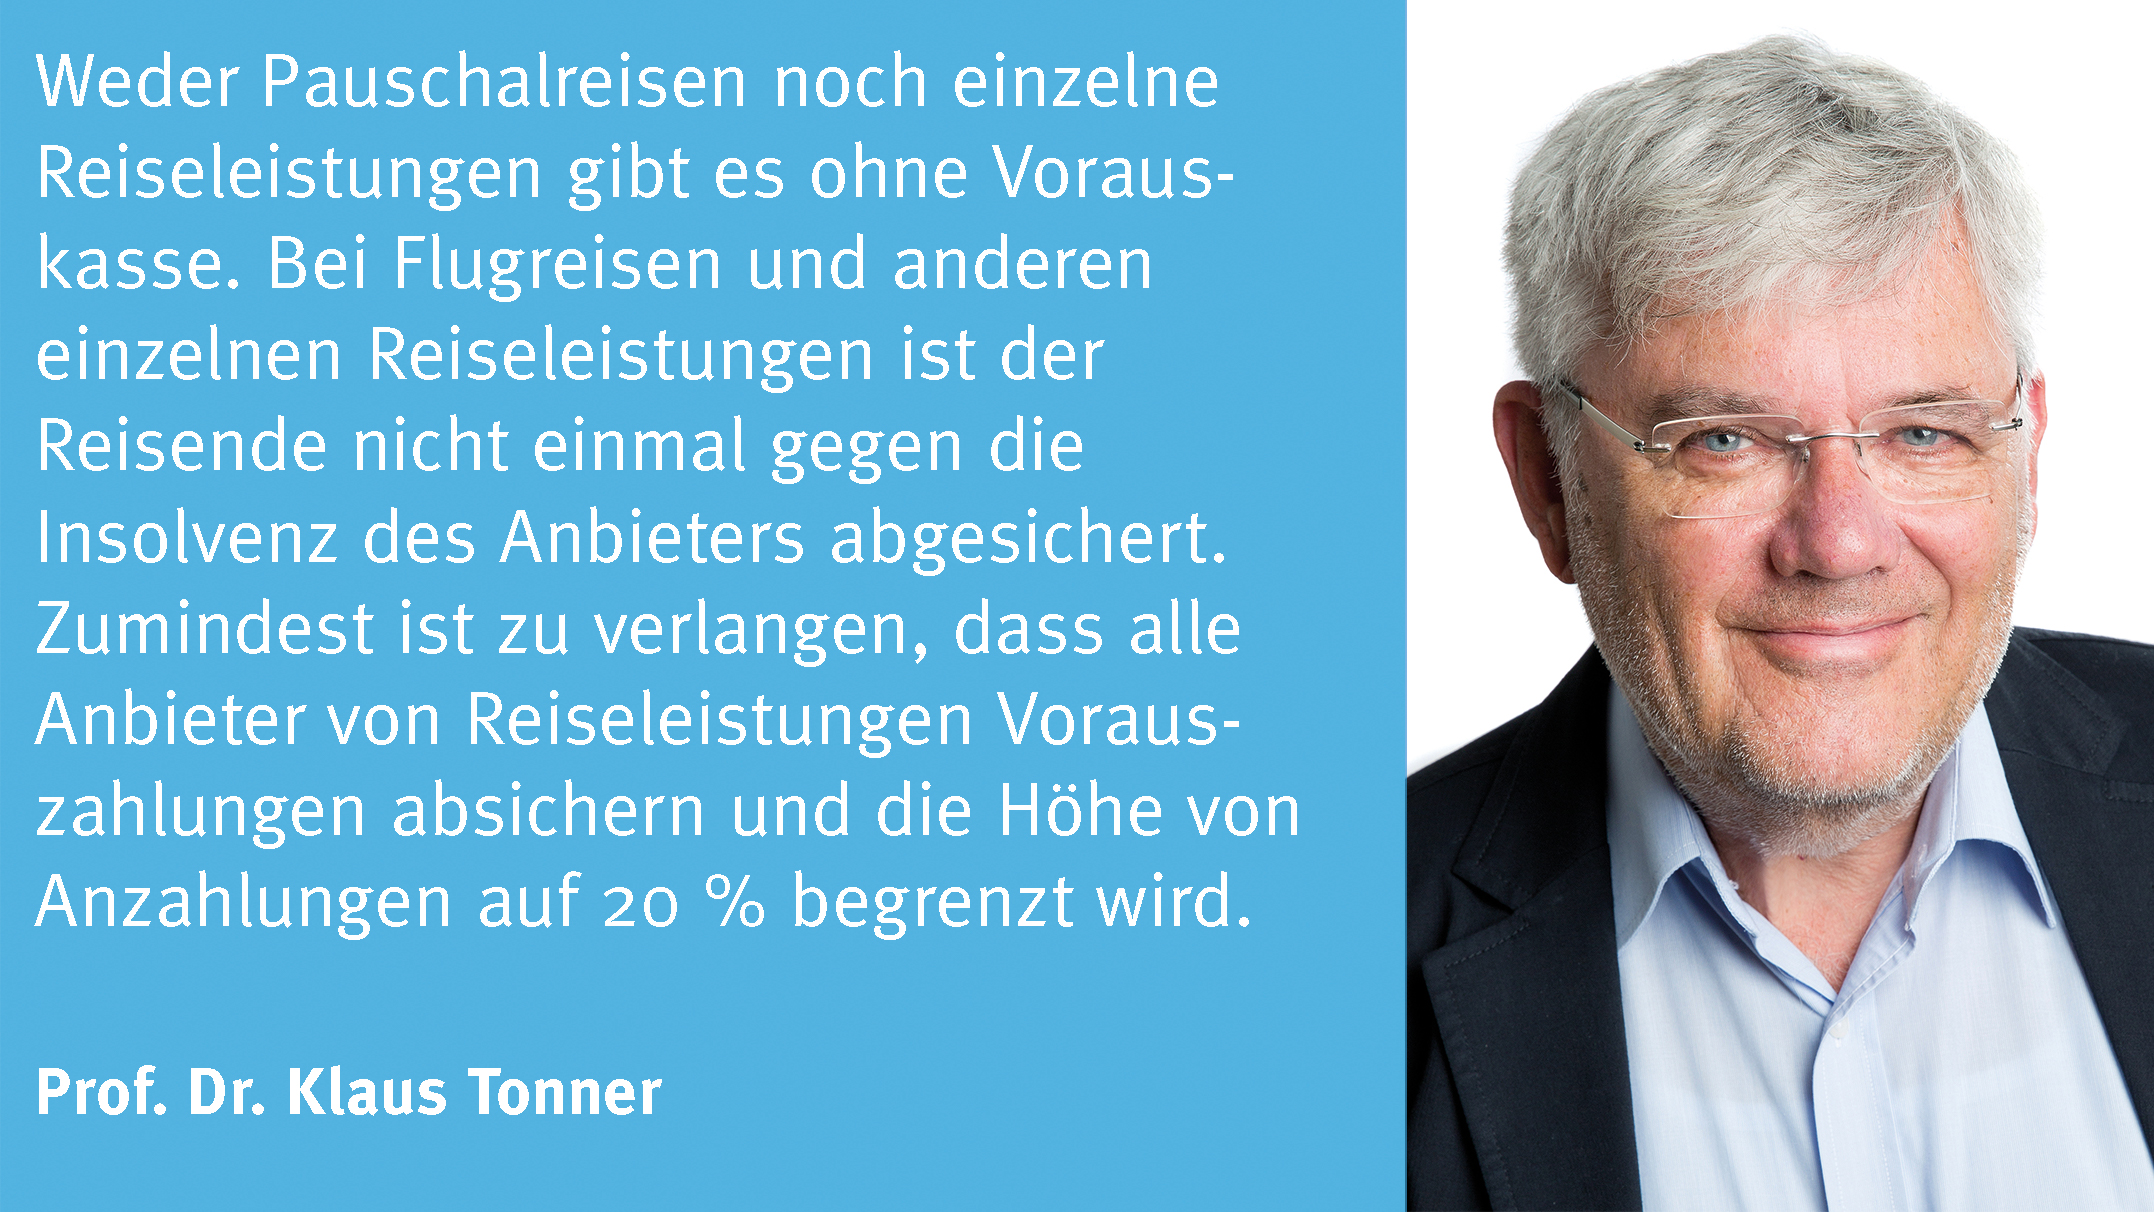 Statement Klaus Tonner